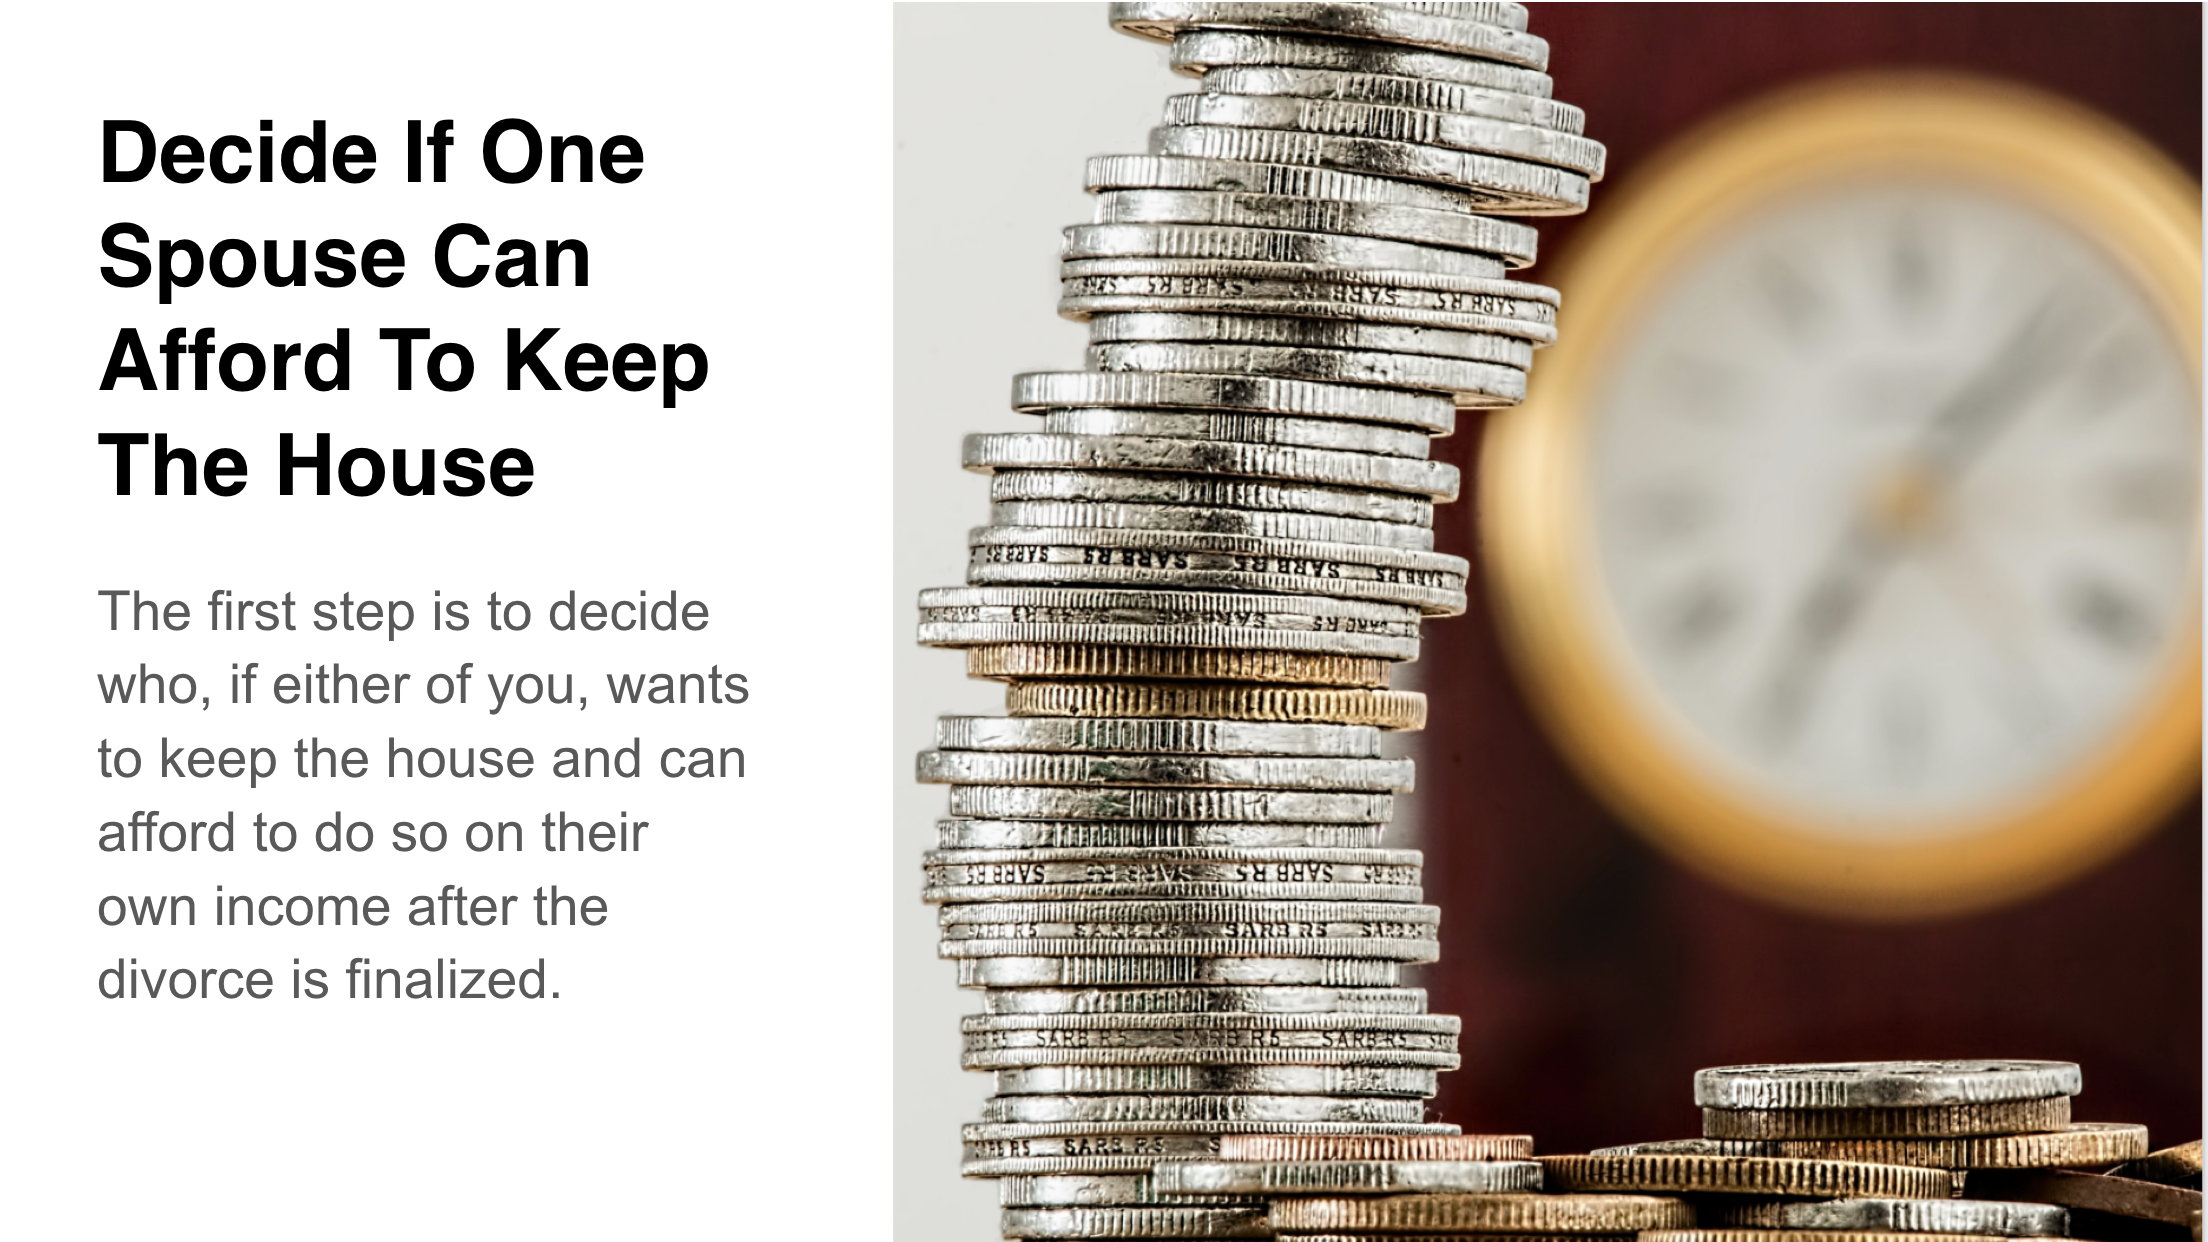 Decide if one spouse can afford to keep the house